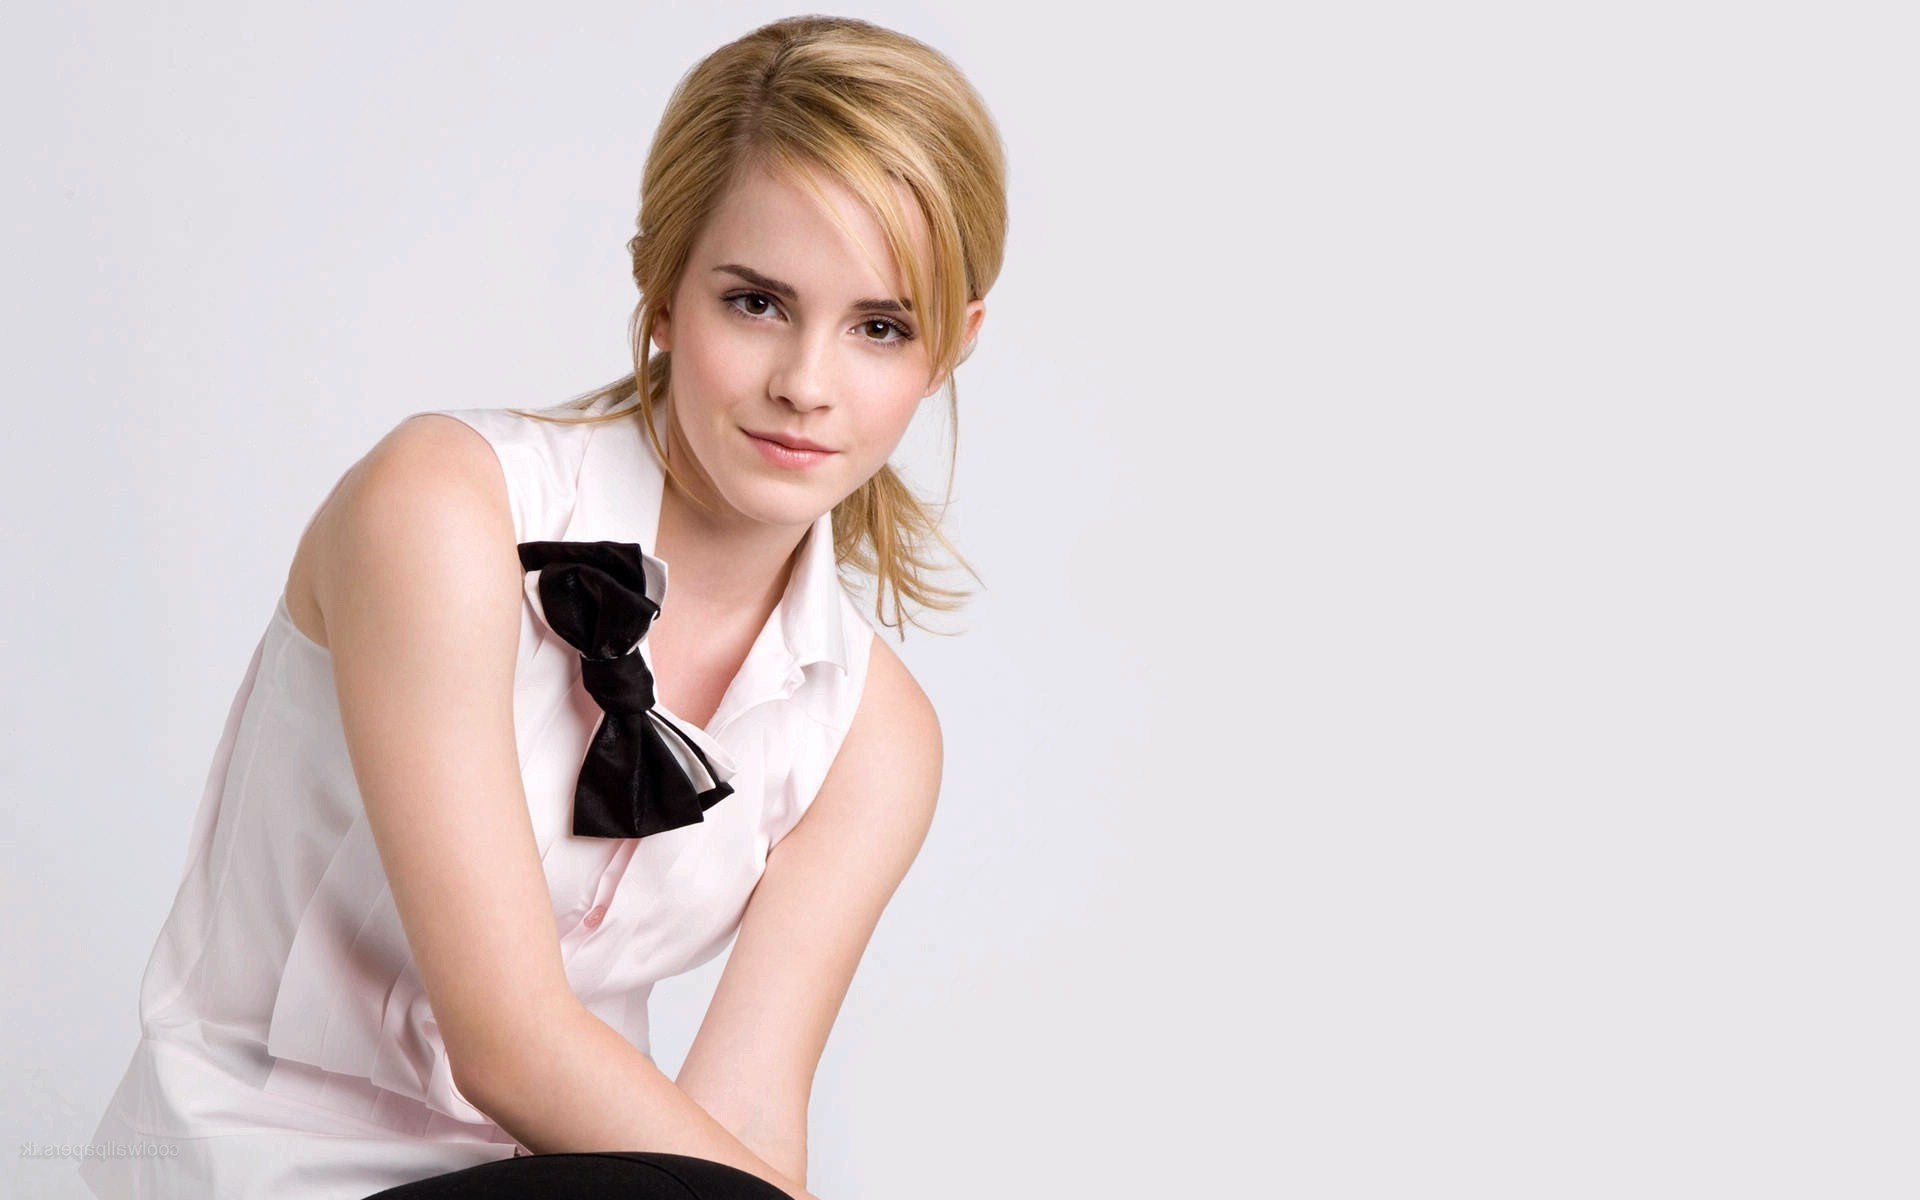 Simple Girl Wallpaper Pc Emma Watson Blonde Simple Background Wallpapers Hd